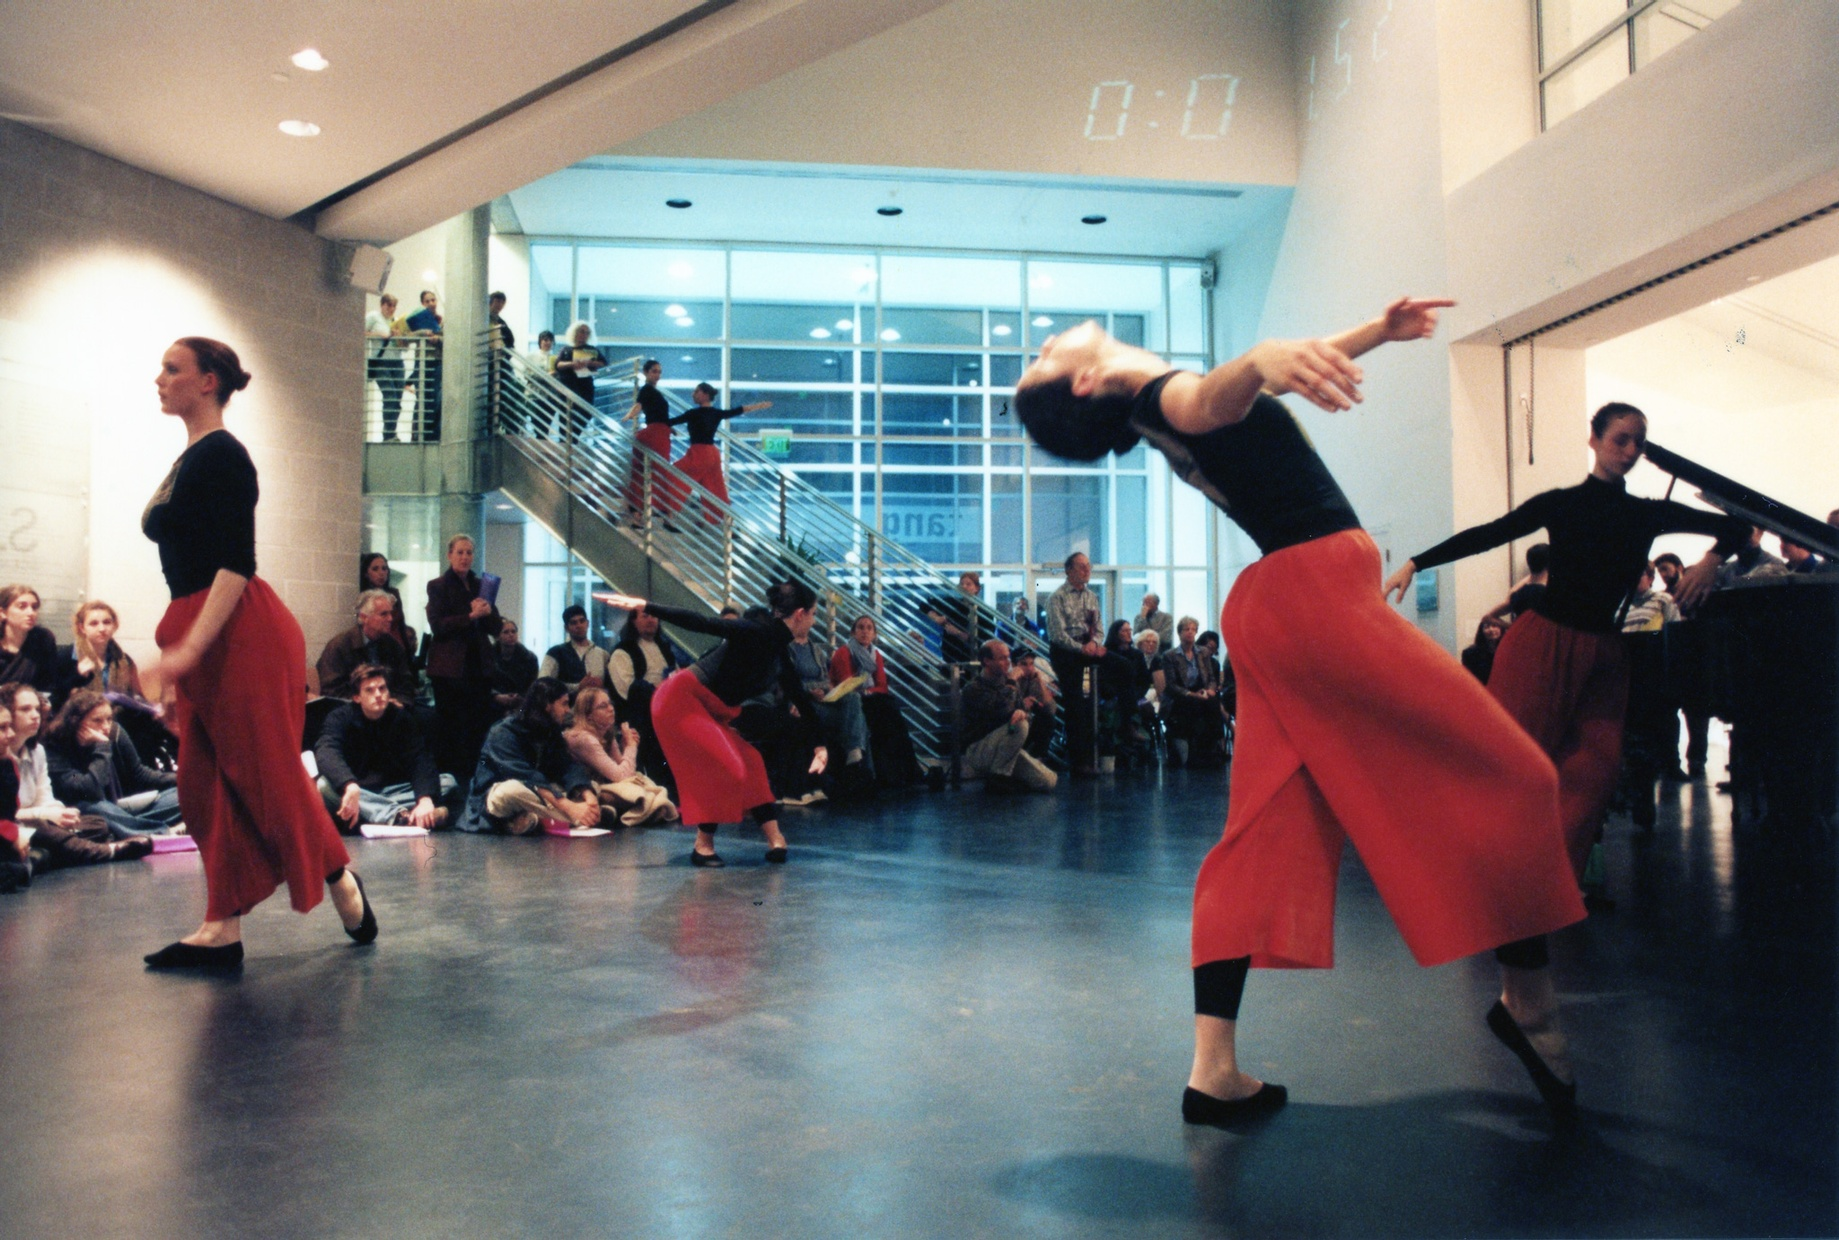 A group of dancers perform in an open space with a crowd of people sitting on the floor around them.